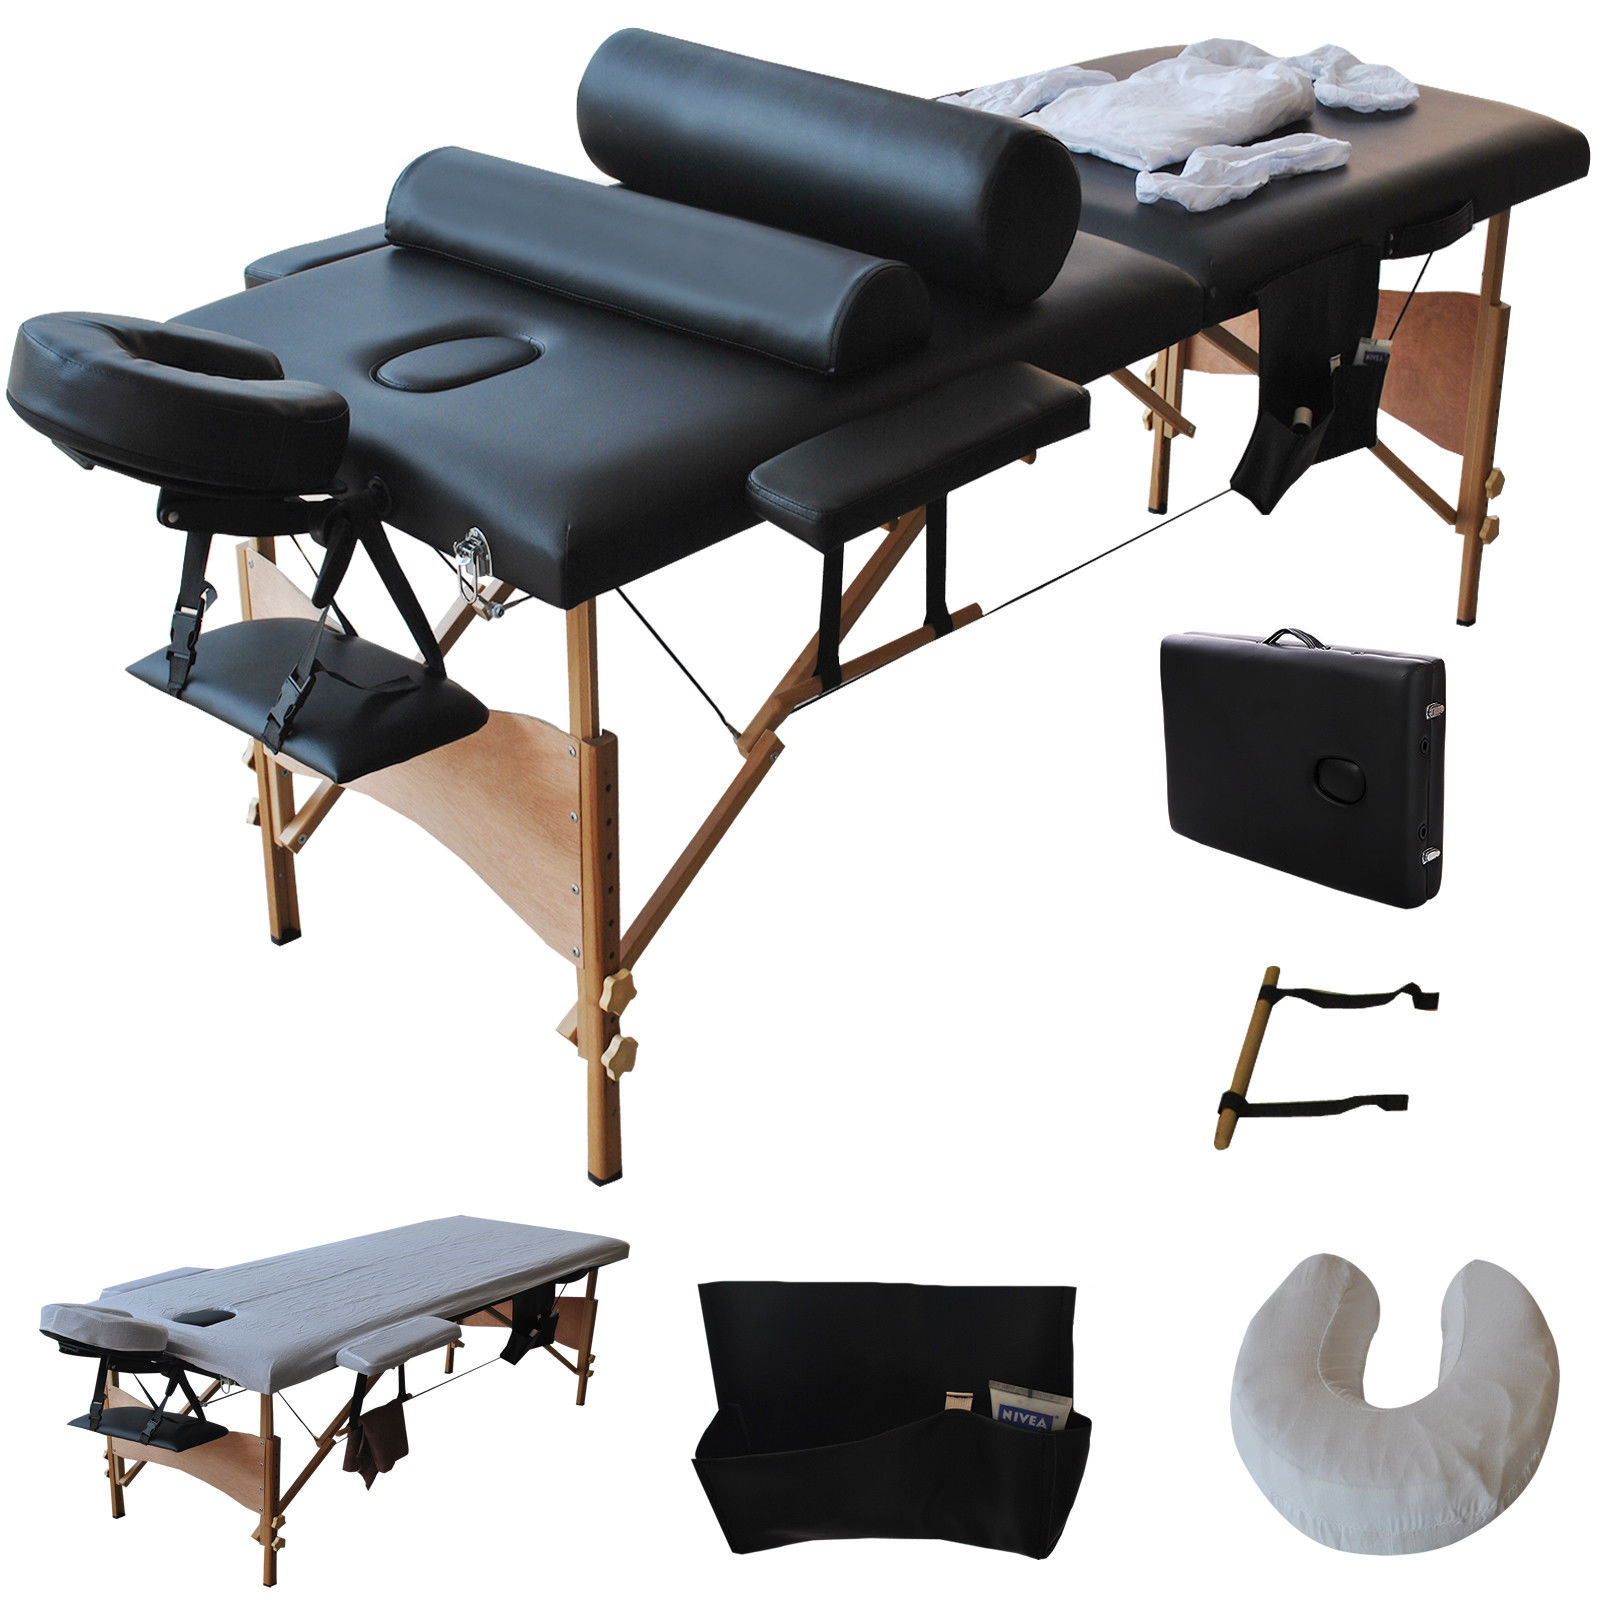 "Costway 84""l Massage Table Portable Facial SPA Bed W/sheet+cradle Cover+2 Pillows+hanger (Black)"